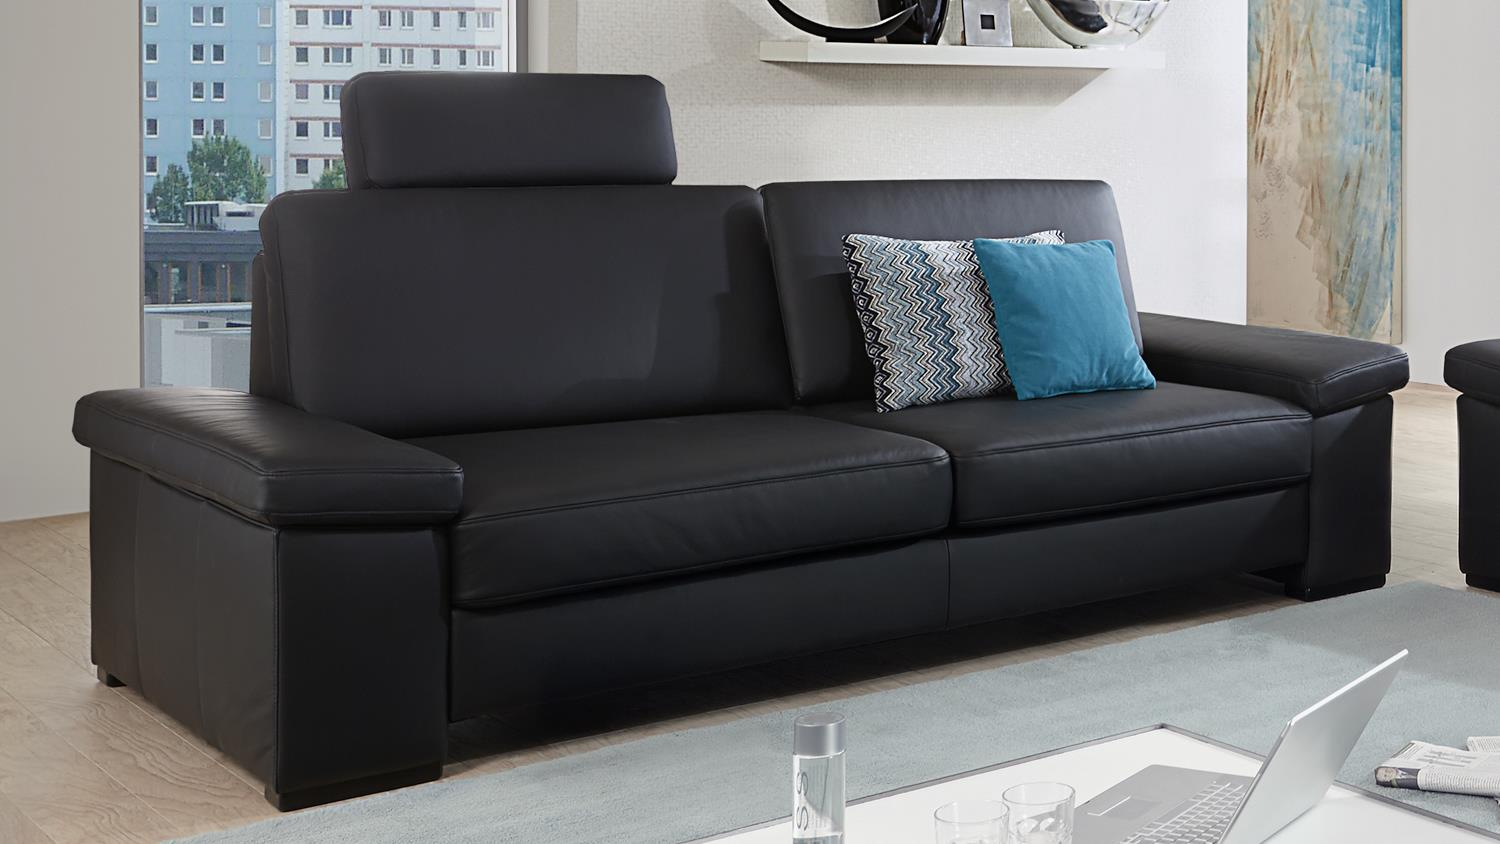 sofa puzzle 3 sitzer in echtleder schwarz mit federkern breite 228 cm. Black Bedroom Furniture Sets. Home Design Ideas